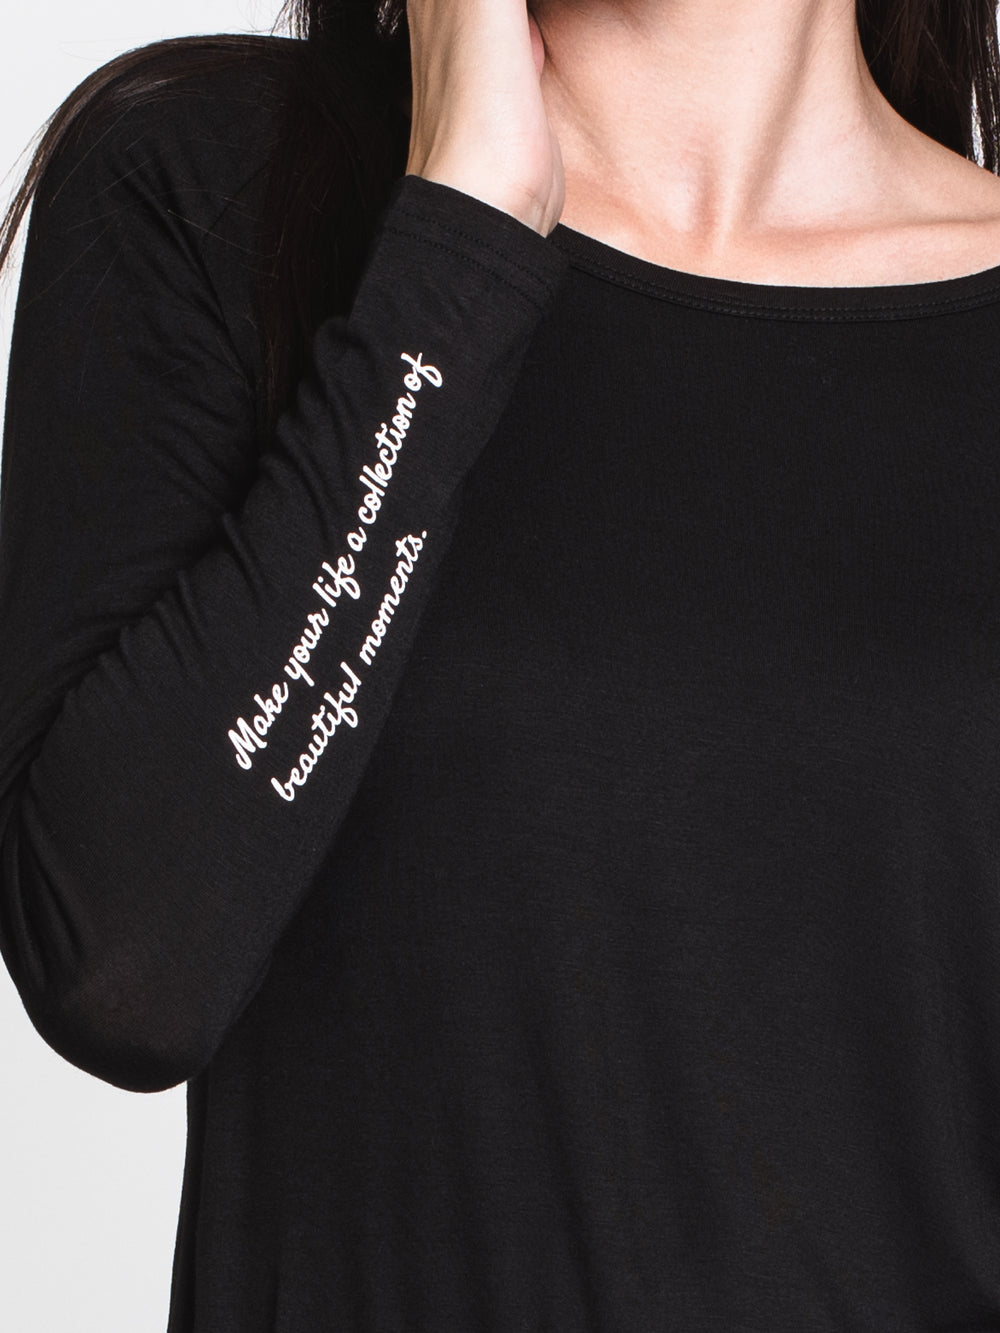 WOMENS BEAUTIFUL MOMENTS LONG SLEEVE TEE-BLK